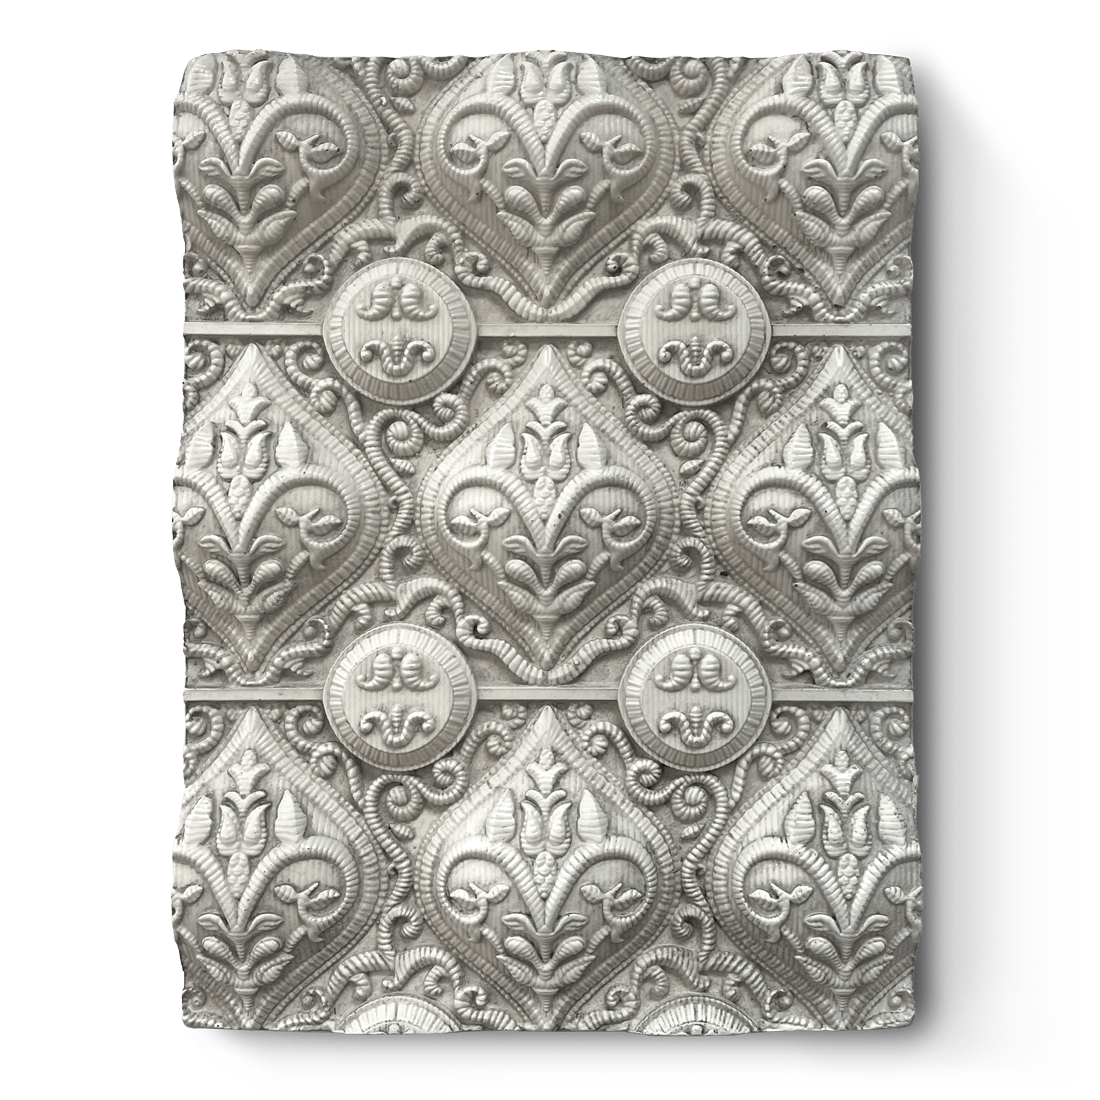 T533 - Embroidery - Memory Block Sid Dickens